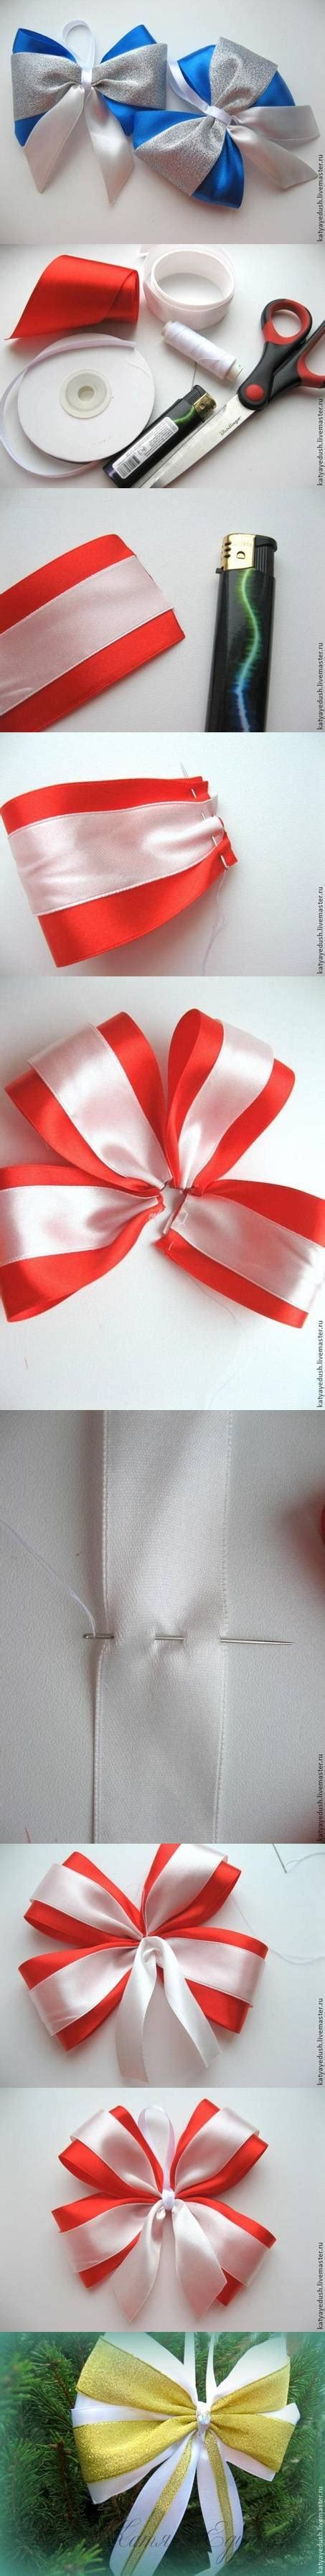 diy christmas bows for trees diy tree bows pictures photos and images for and